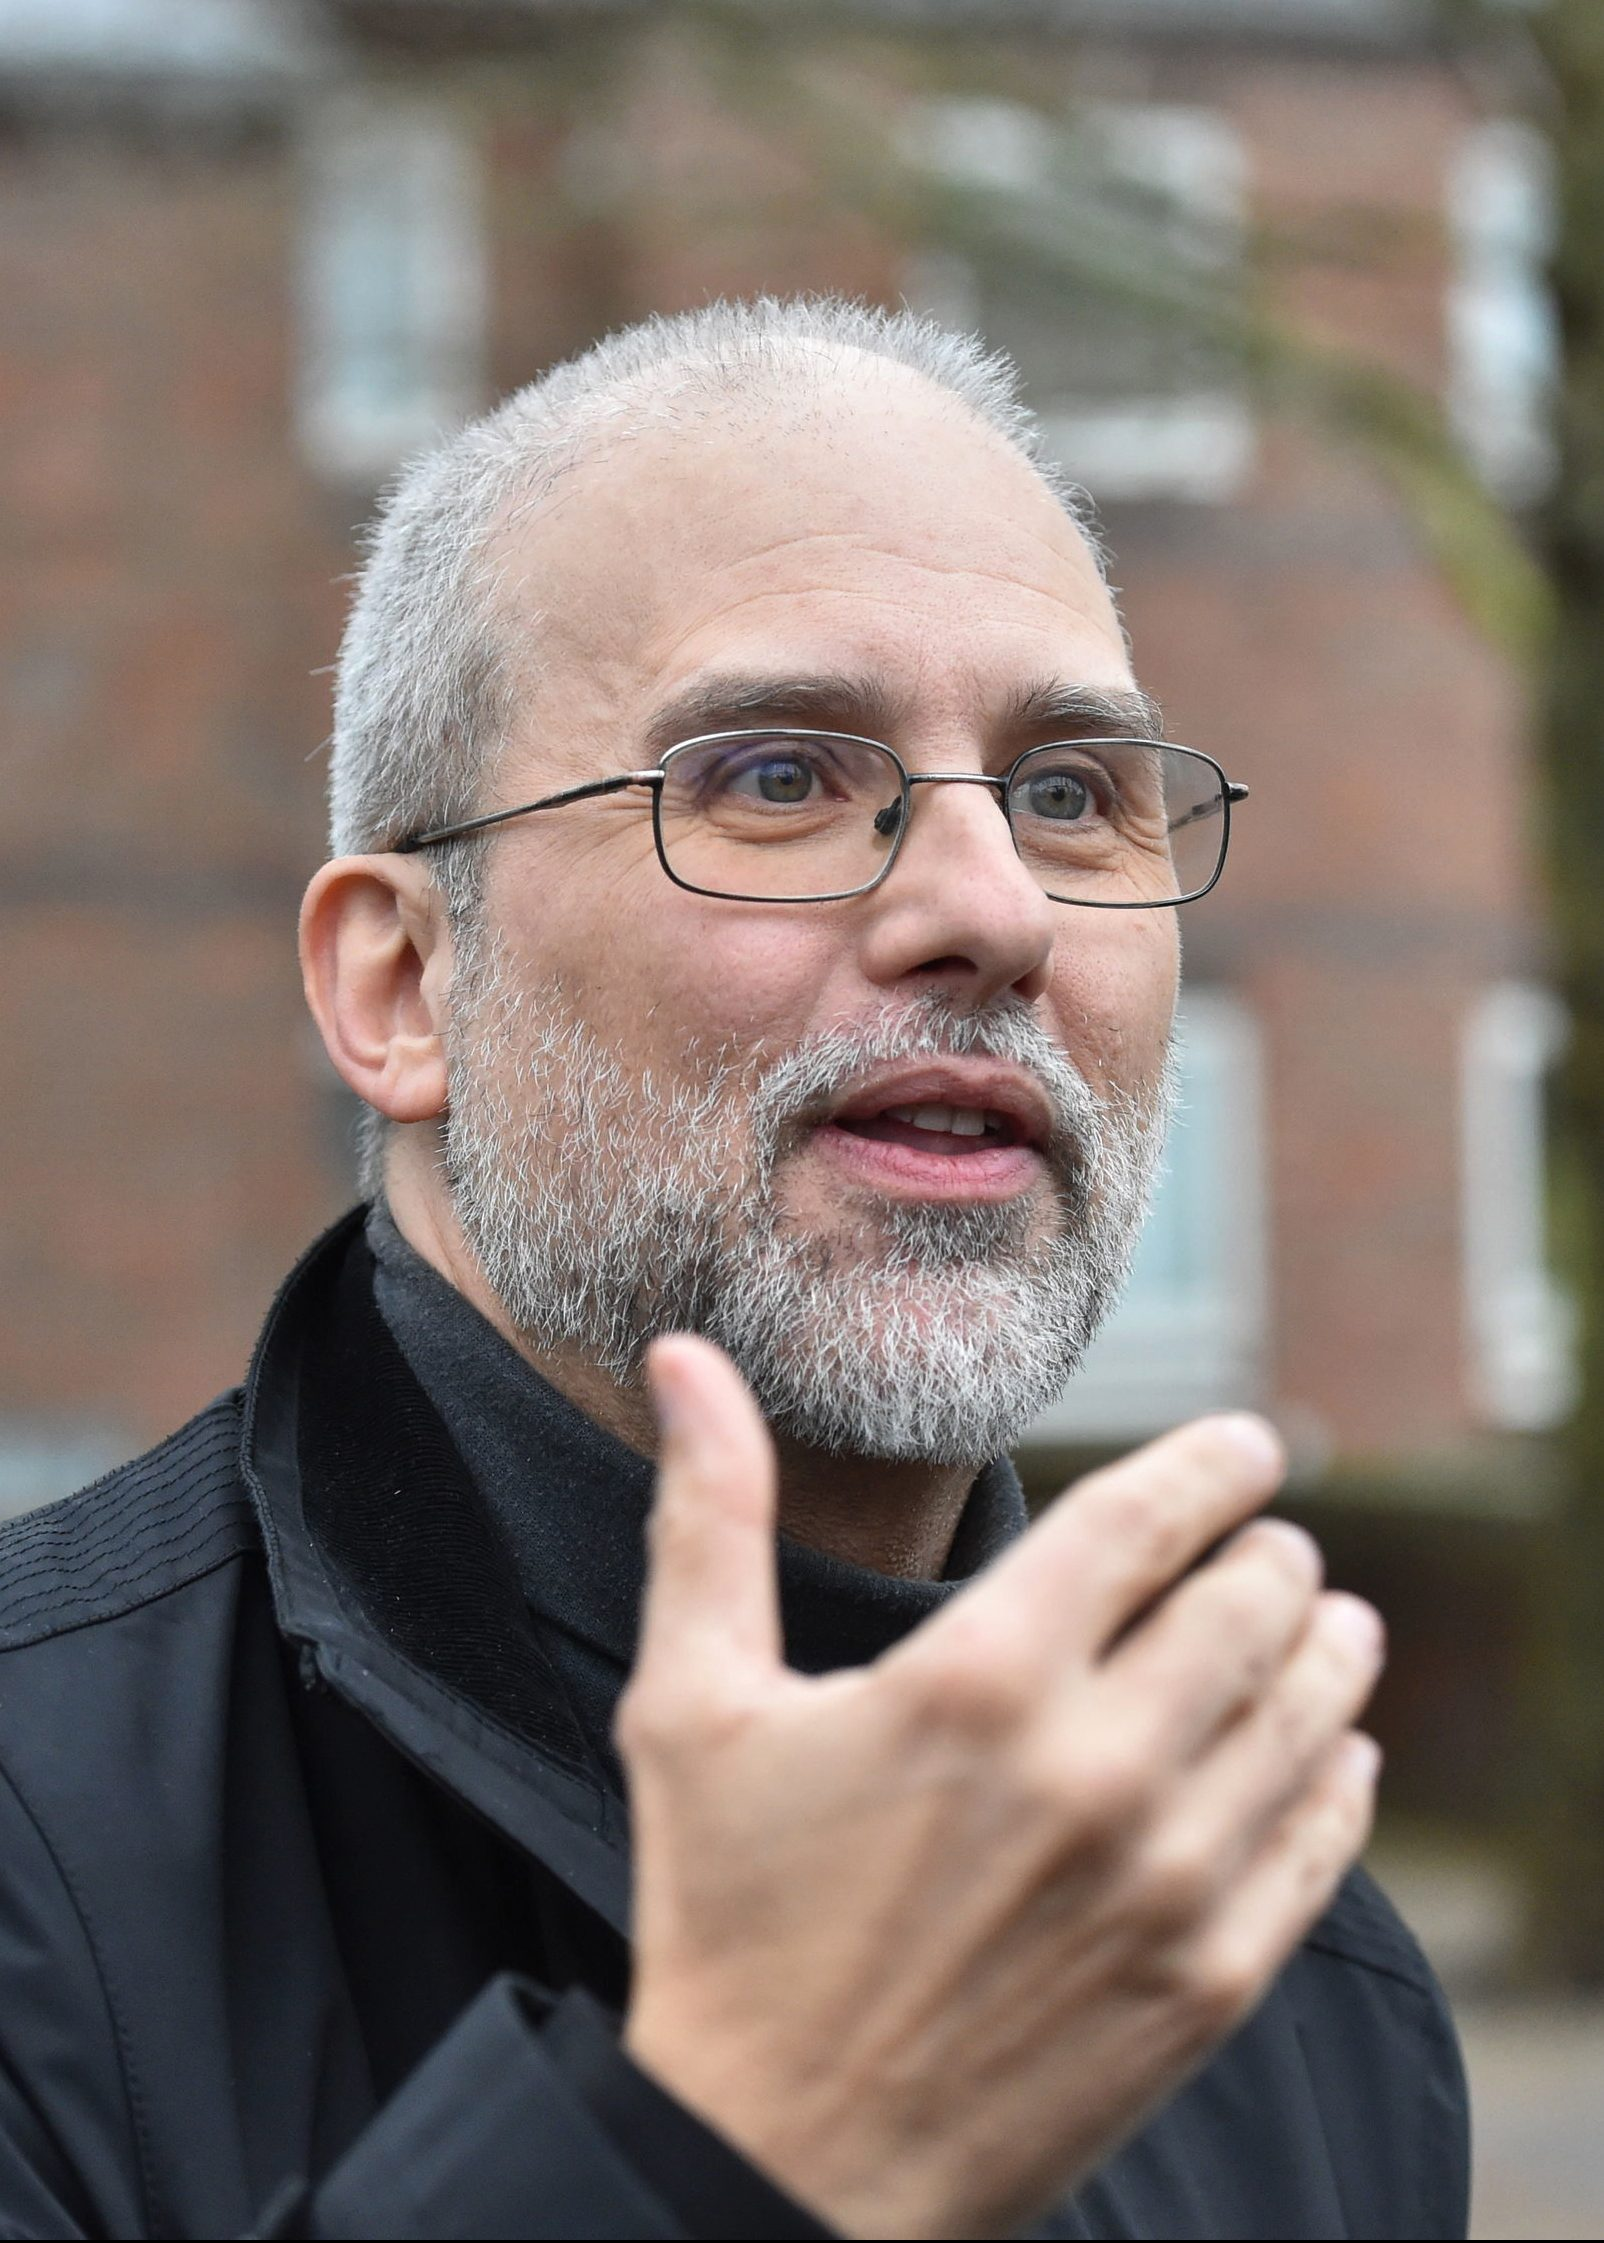 Jordi Casamitjana leaves an Employment Tribunal after it ruled that ethical veganism is a philosophical belief and is therefore protected by law, outside the court in Norwich, England on Jan. 3, 2020.